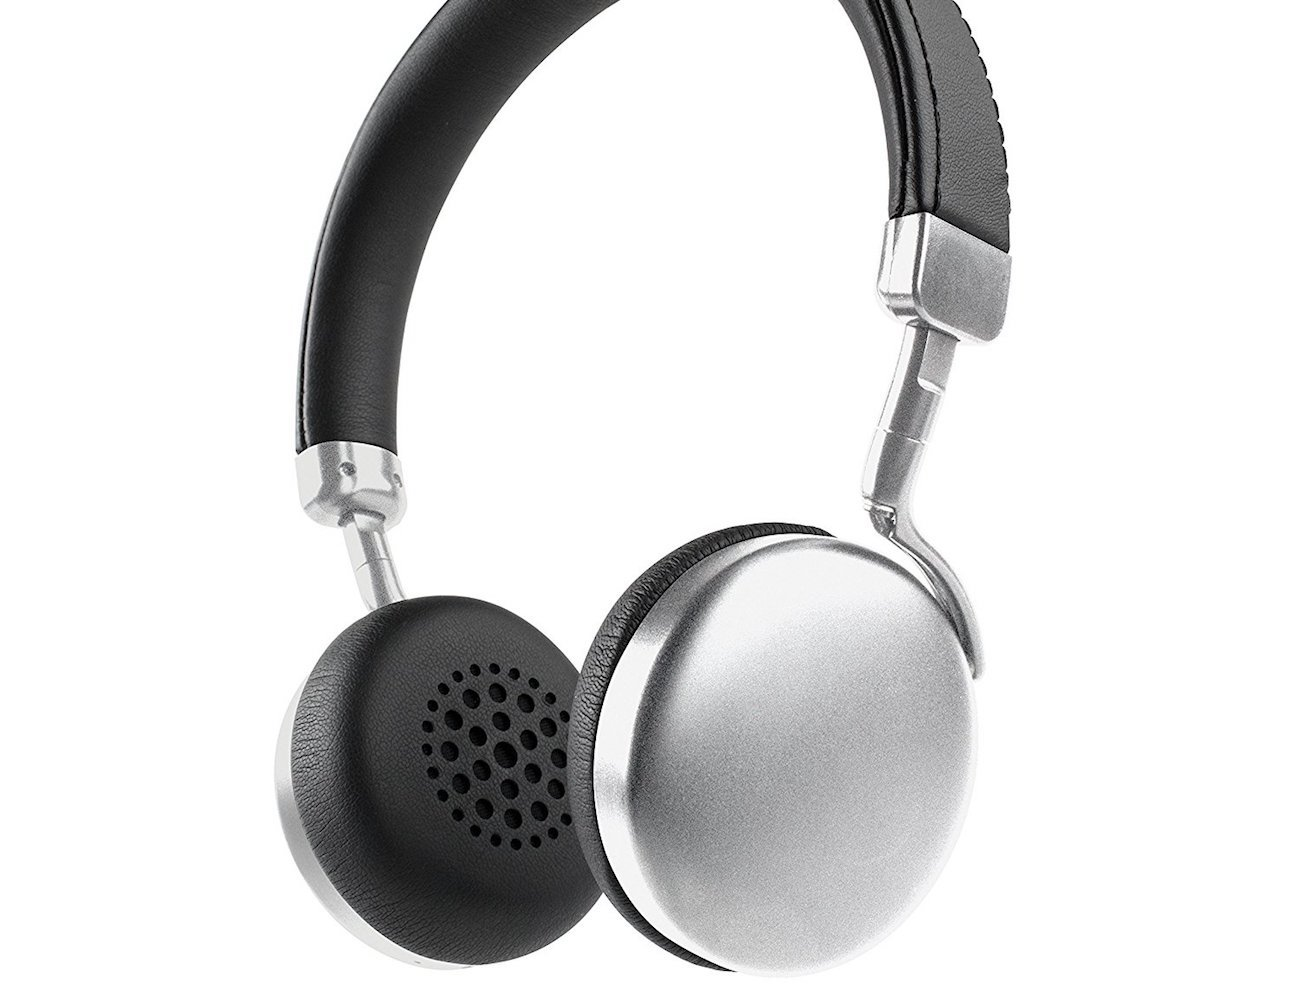 Photive HF1 Lightweight Wireless Headphones